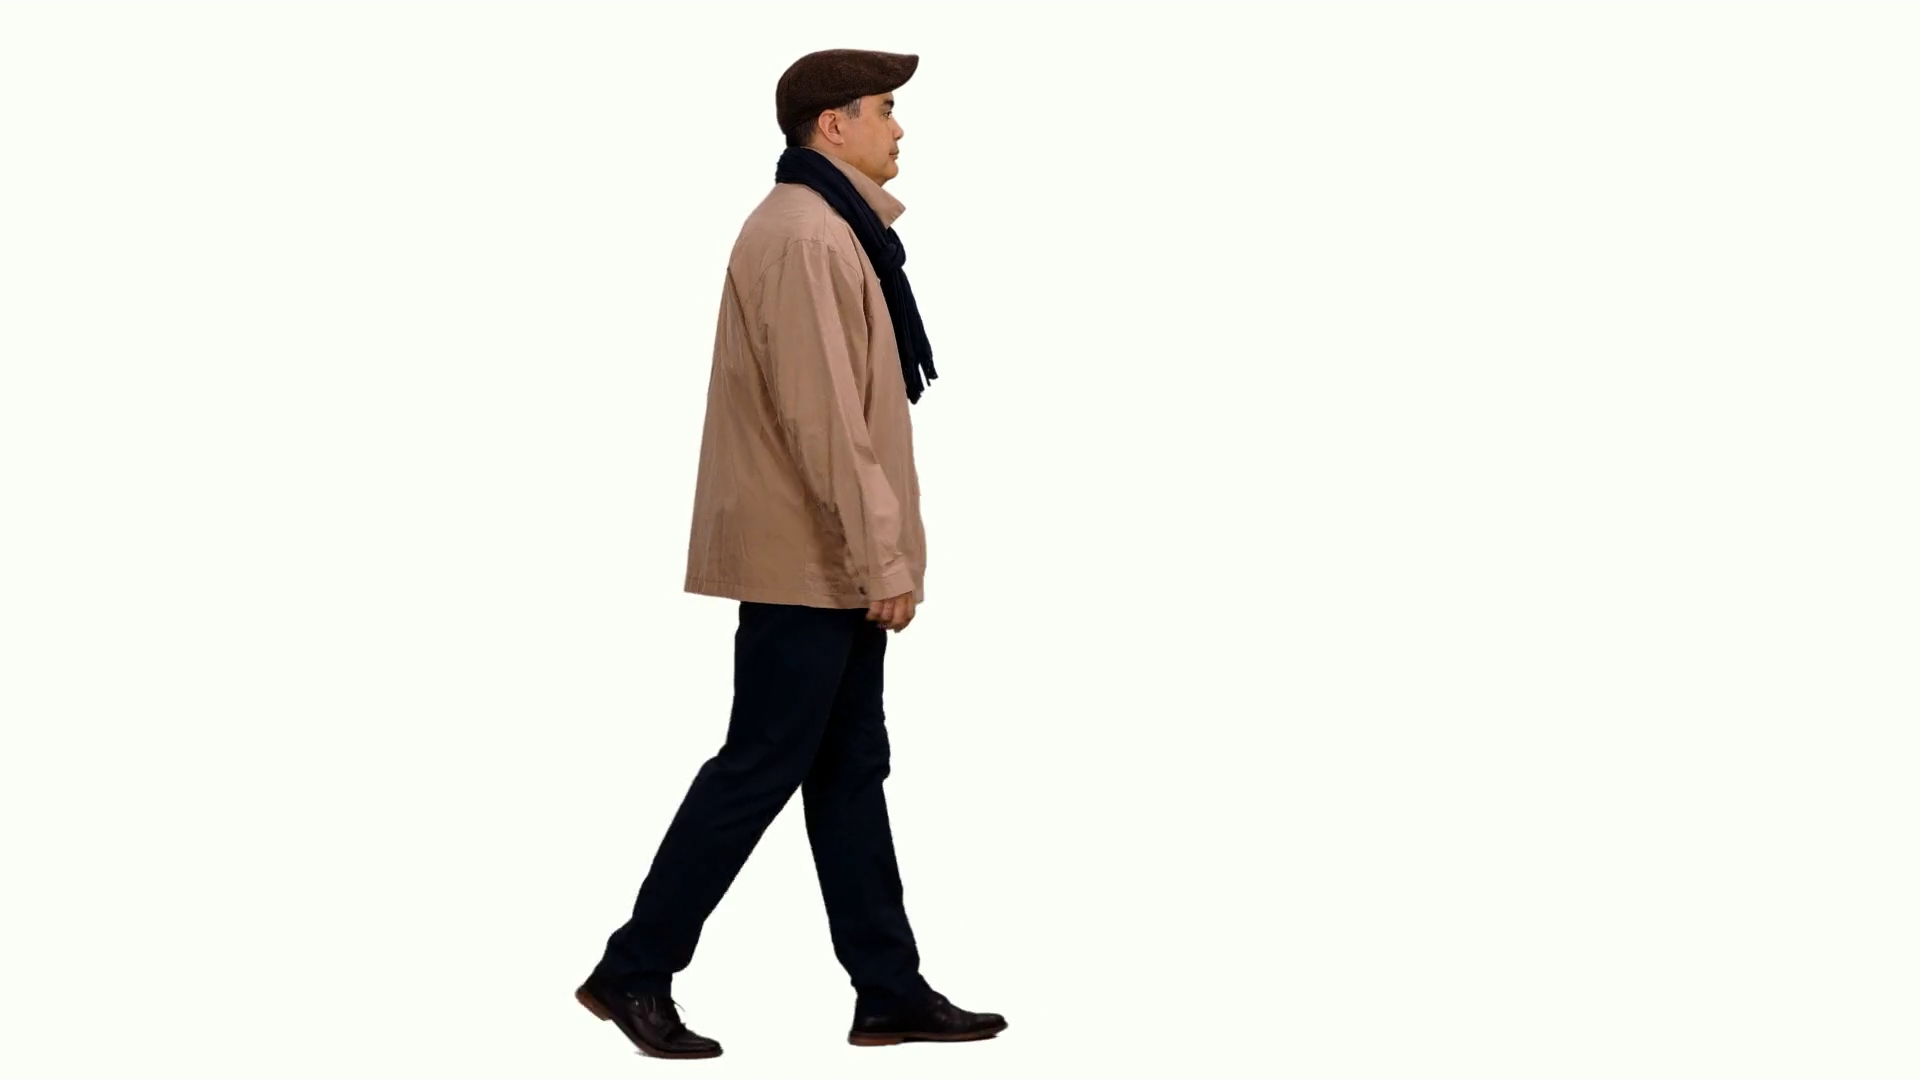 1920x1080 Side View Walking Elegant Man In Jacket With Scarf And Flat Cap